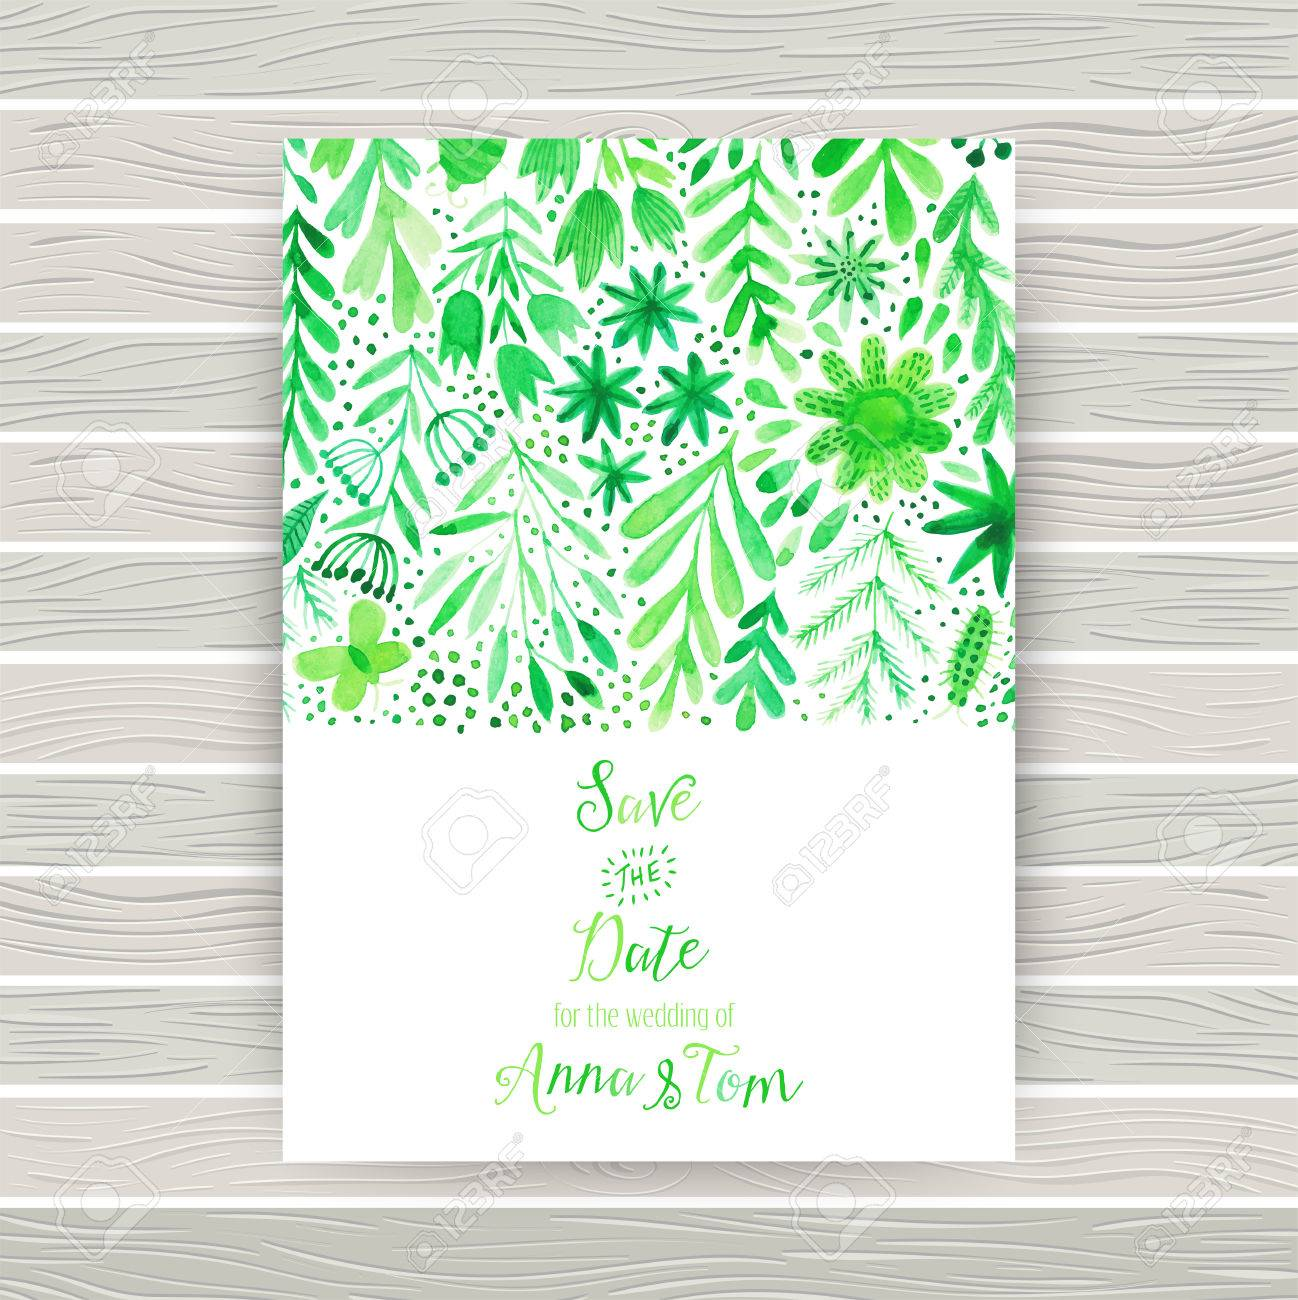 Vector Watercolor Invitation Card With Flowers And Plants. Floral ...